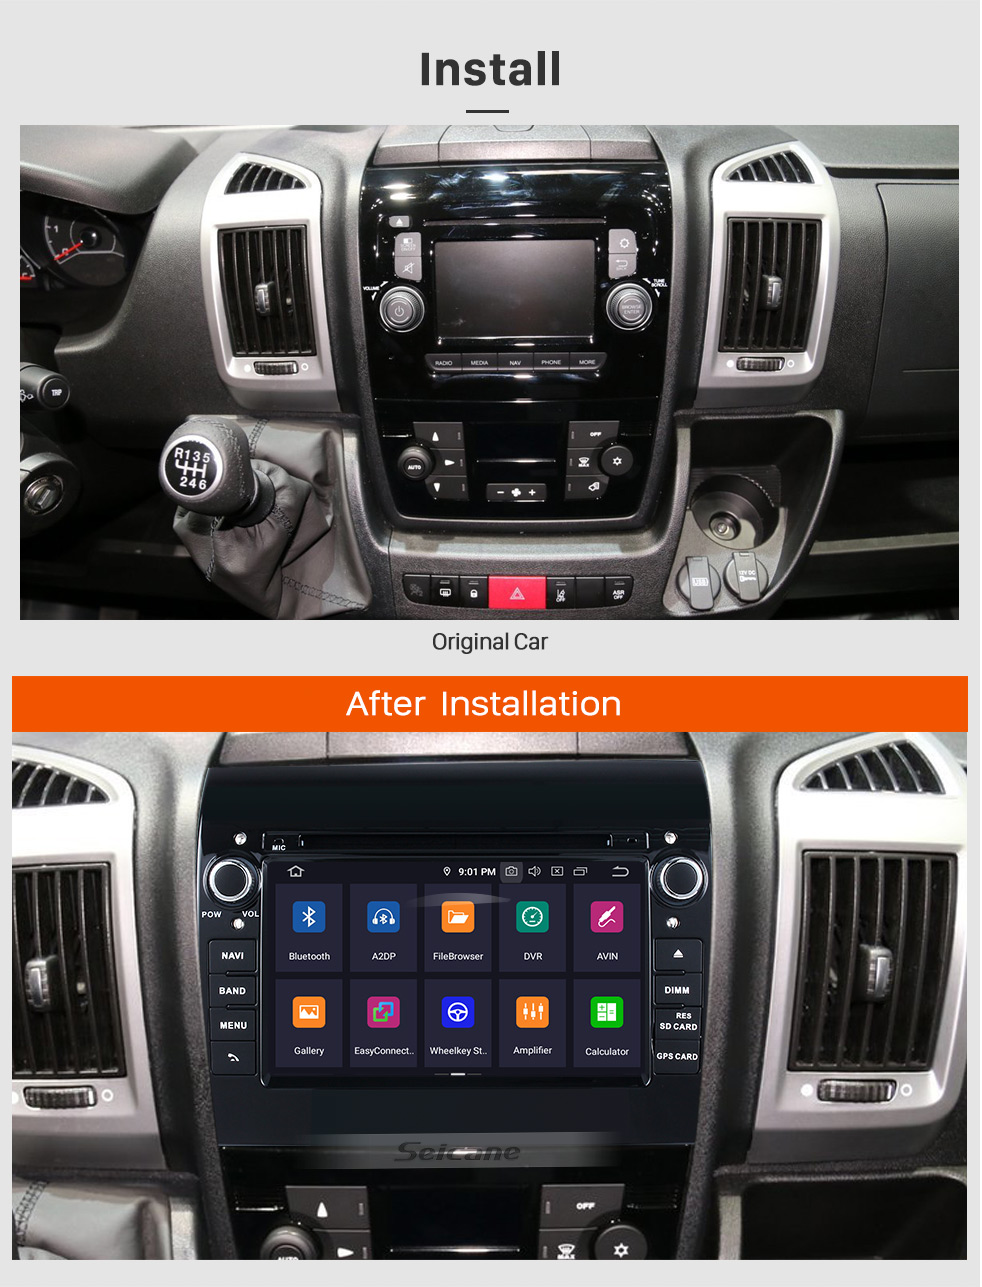 Seicane Aftermarket 7 inch Android 9.0 2007-2016 Fiat Ducato/Peugeot Boxer Radio DVD Player GPS Navigation System with Bluetooth 3G Wifi Mirror Link Steering Wheel Control Backup Camera DVR OBD2 DAB+